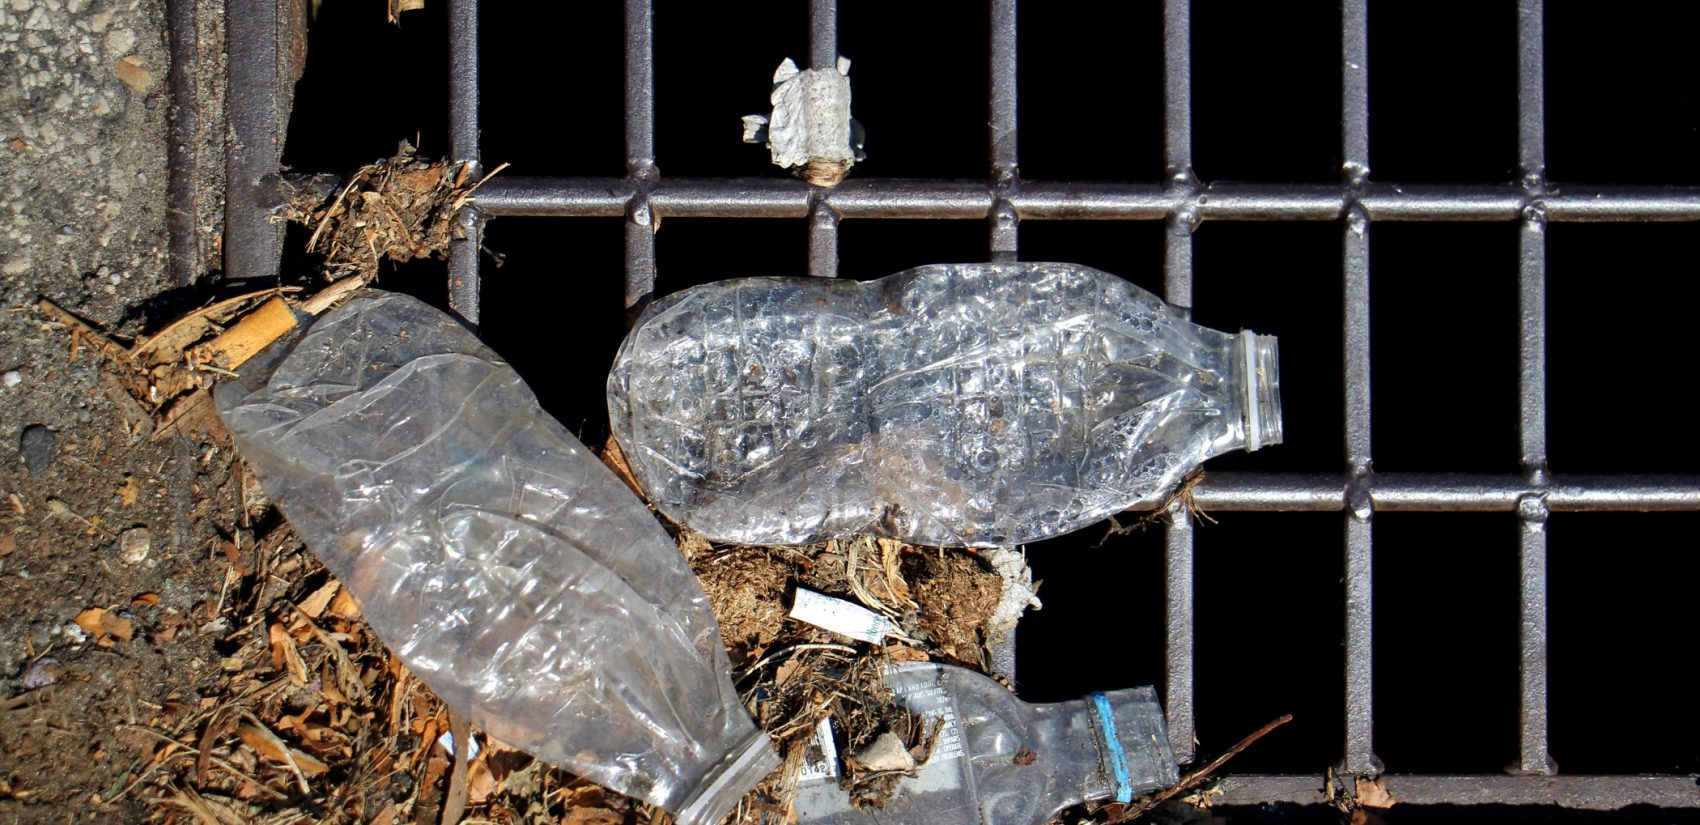 Plastic bottles accumulate on the grate of a storm drain. More and more plastic bottles like these are ending up at the city's sewage treatment facilities, where they are separated and sent to a landfill.(Emma Lee/WHYY)